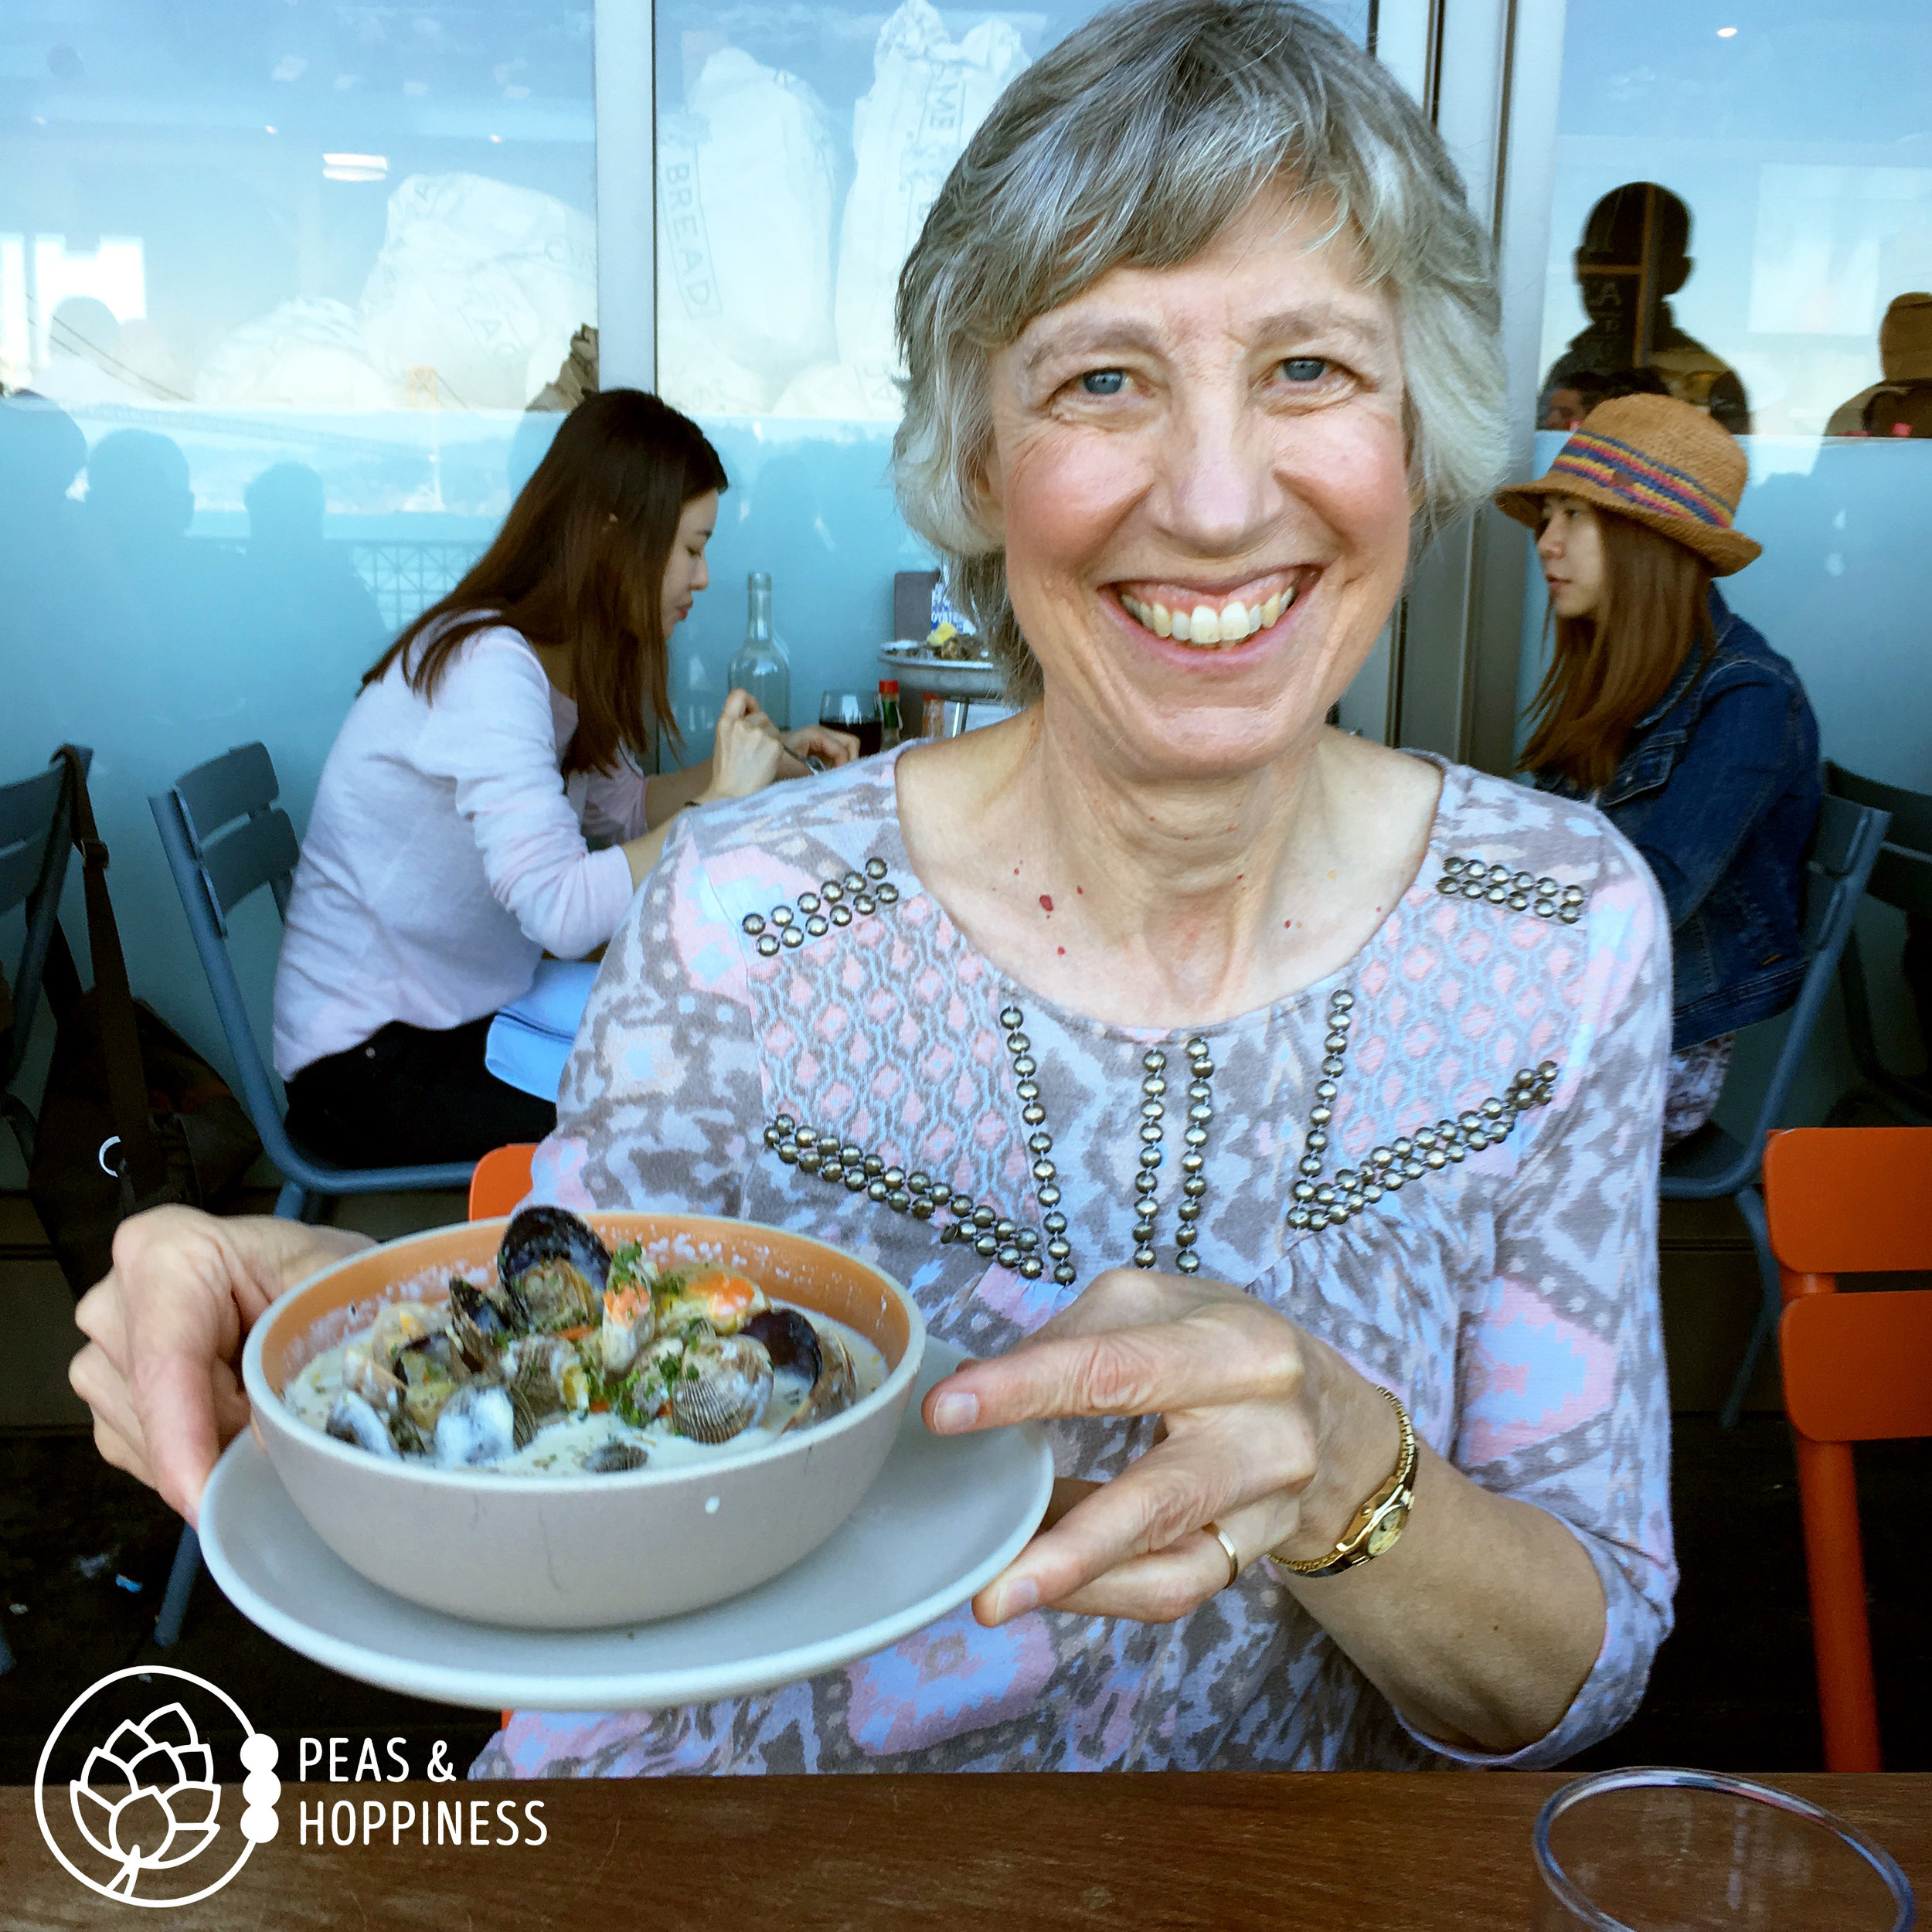 My beautiful mama with gluten-free clam chowder on our Mother/Daughter trip to San Francisco